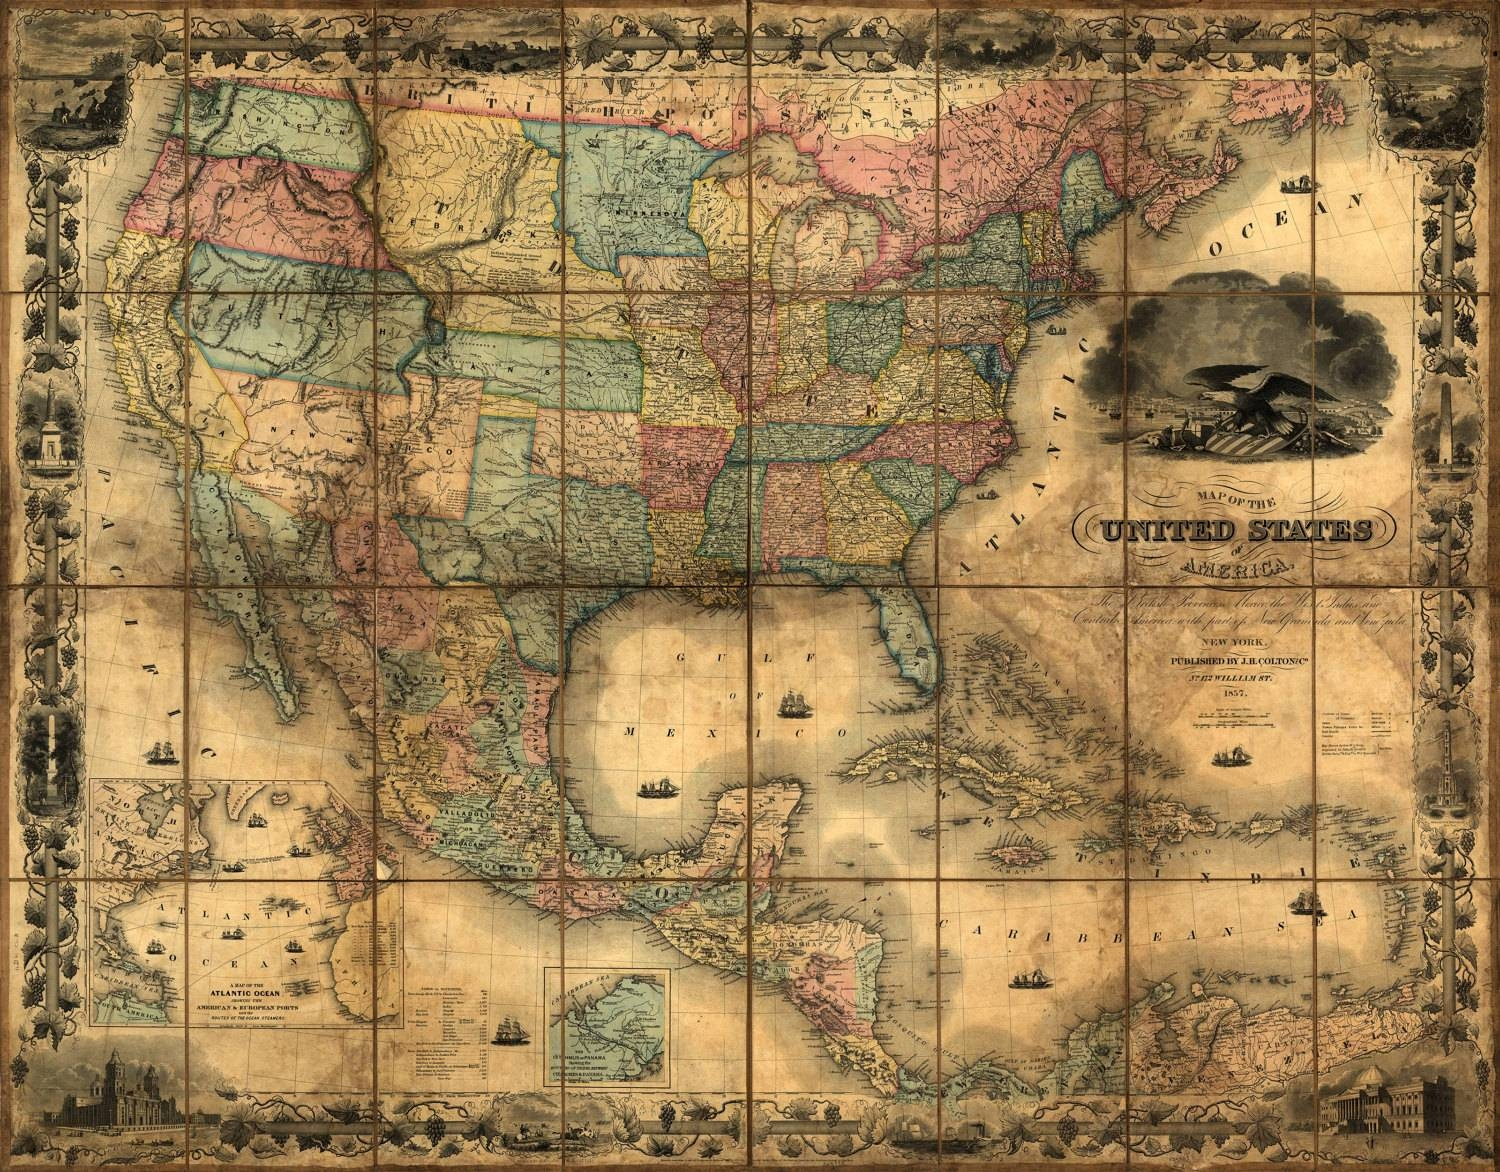 United States Map, Vintage Map, Canvas Large Map, Wall Art Map Within Most Up To Date United States Map Wall Art (View 18 of 20)